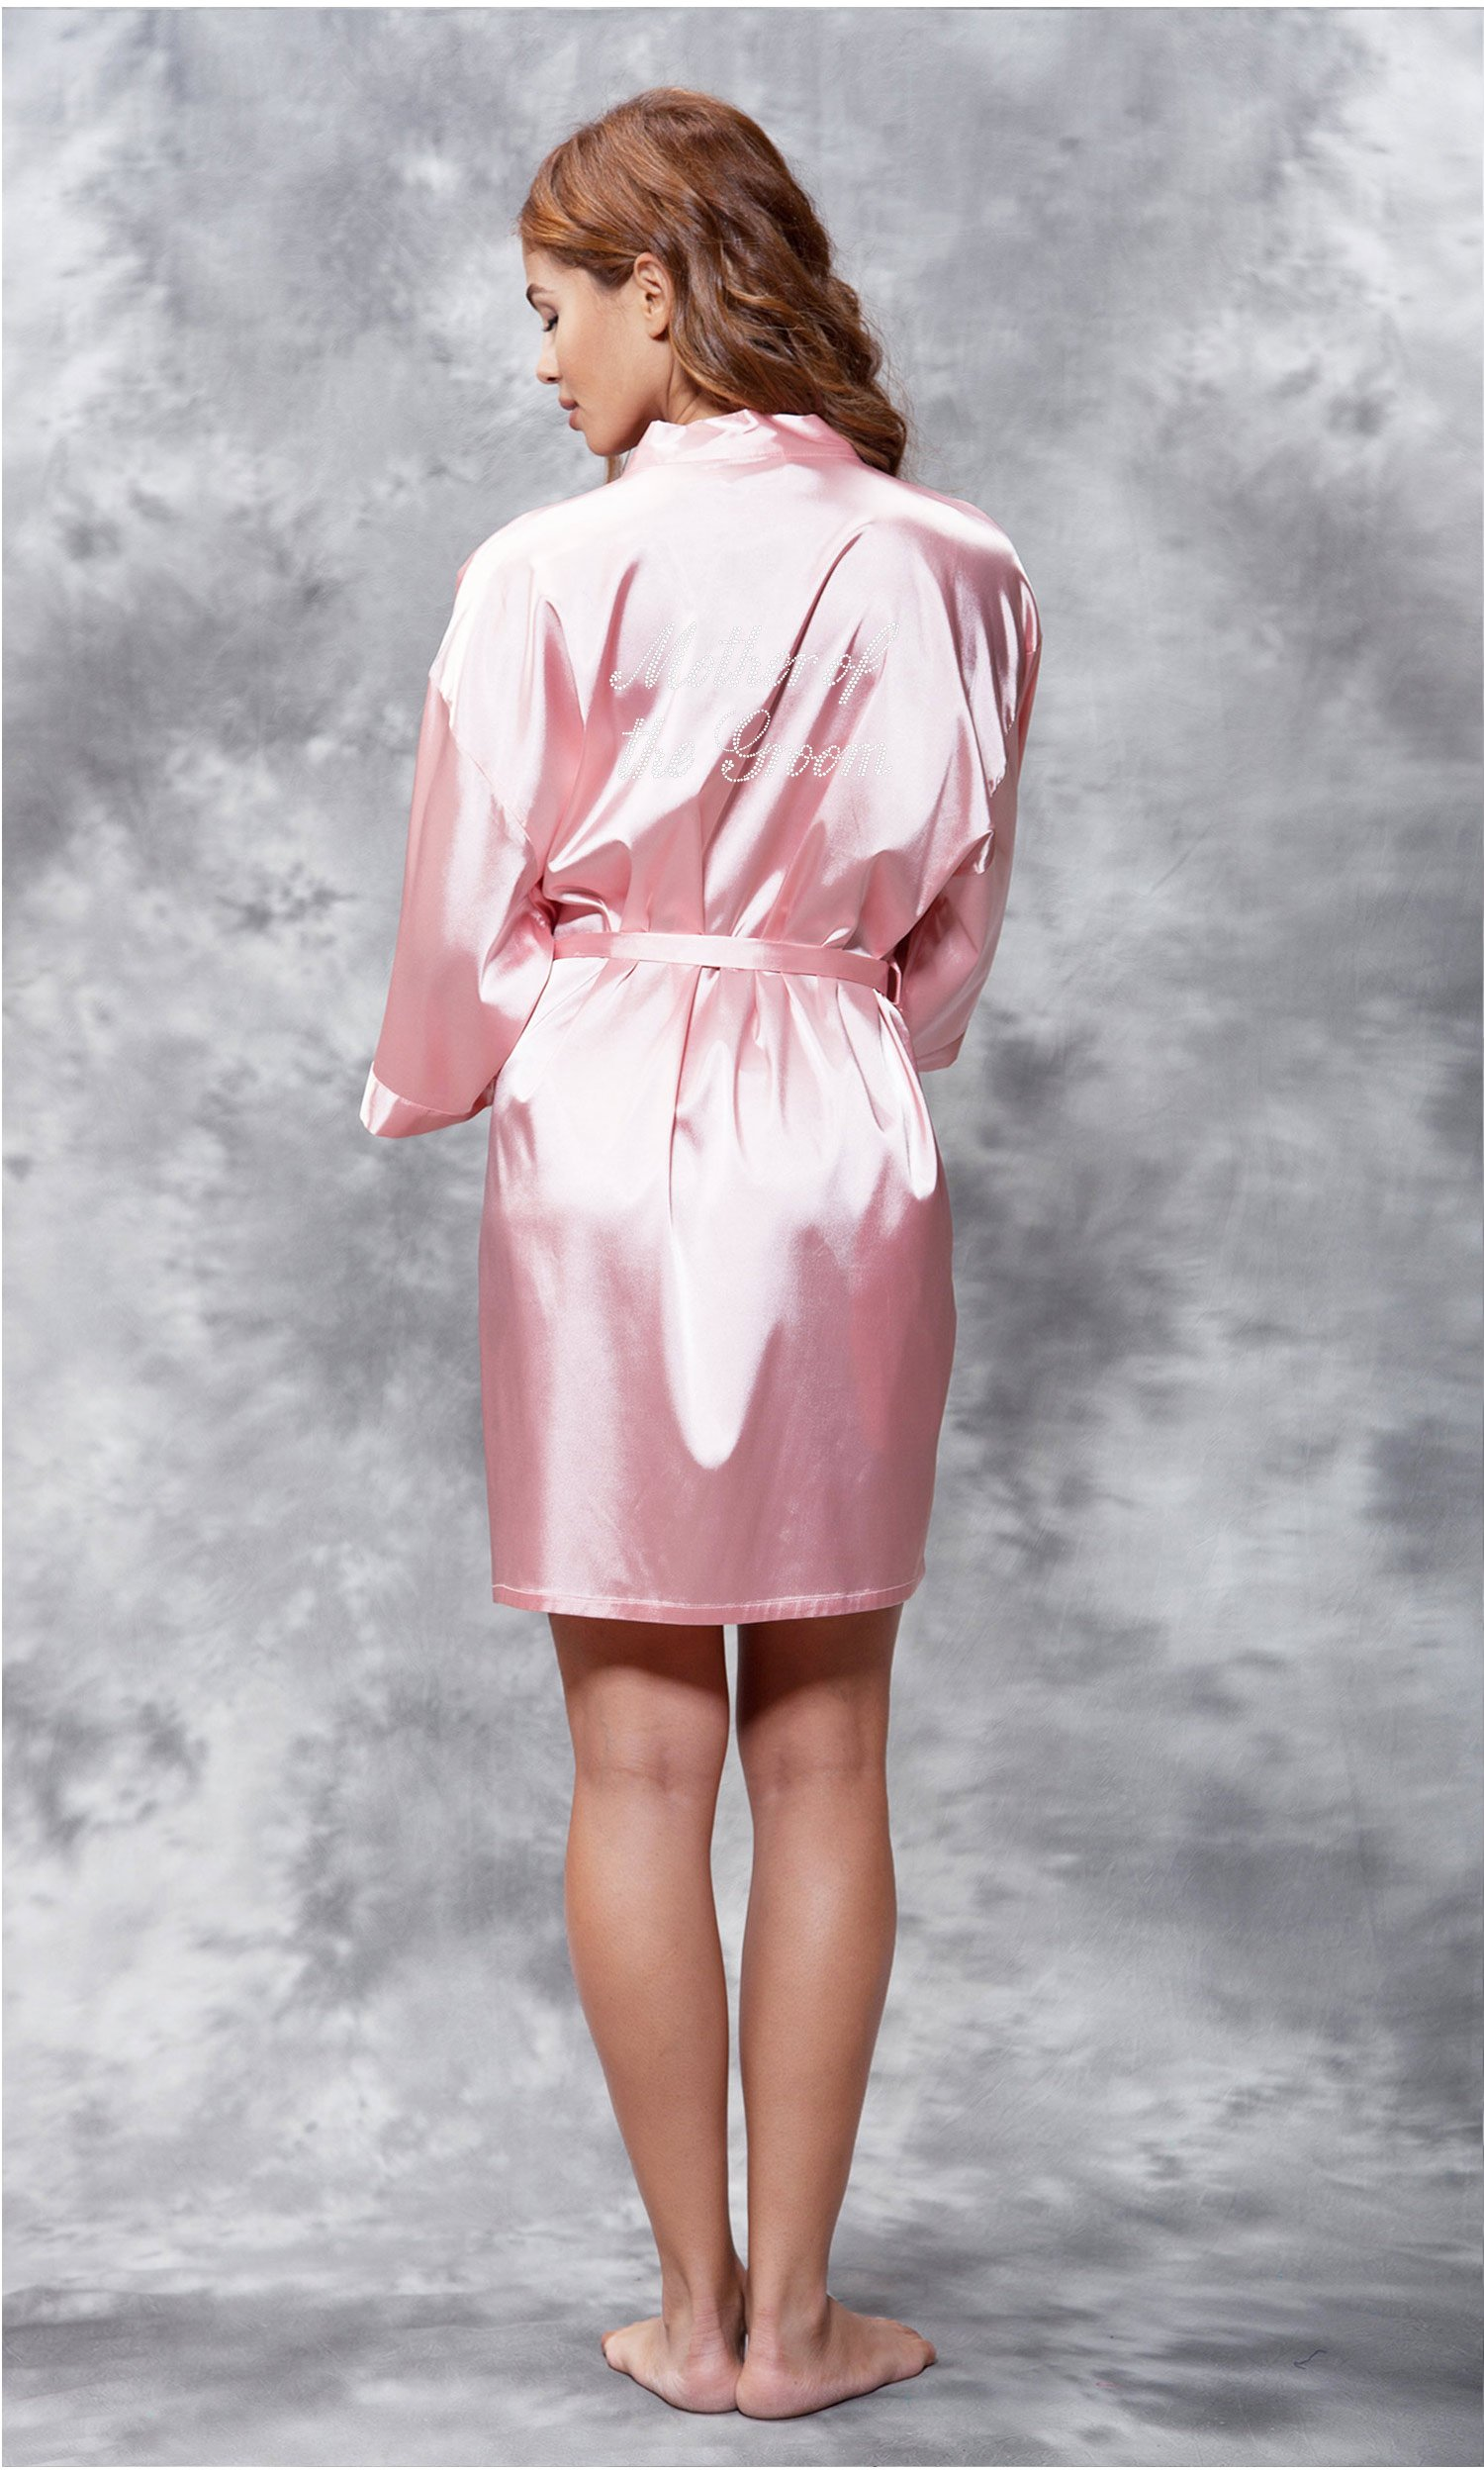 Mother of the Groom Clear Rhinestone Satin Kimono Pink Short Robe-Robemart.com